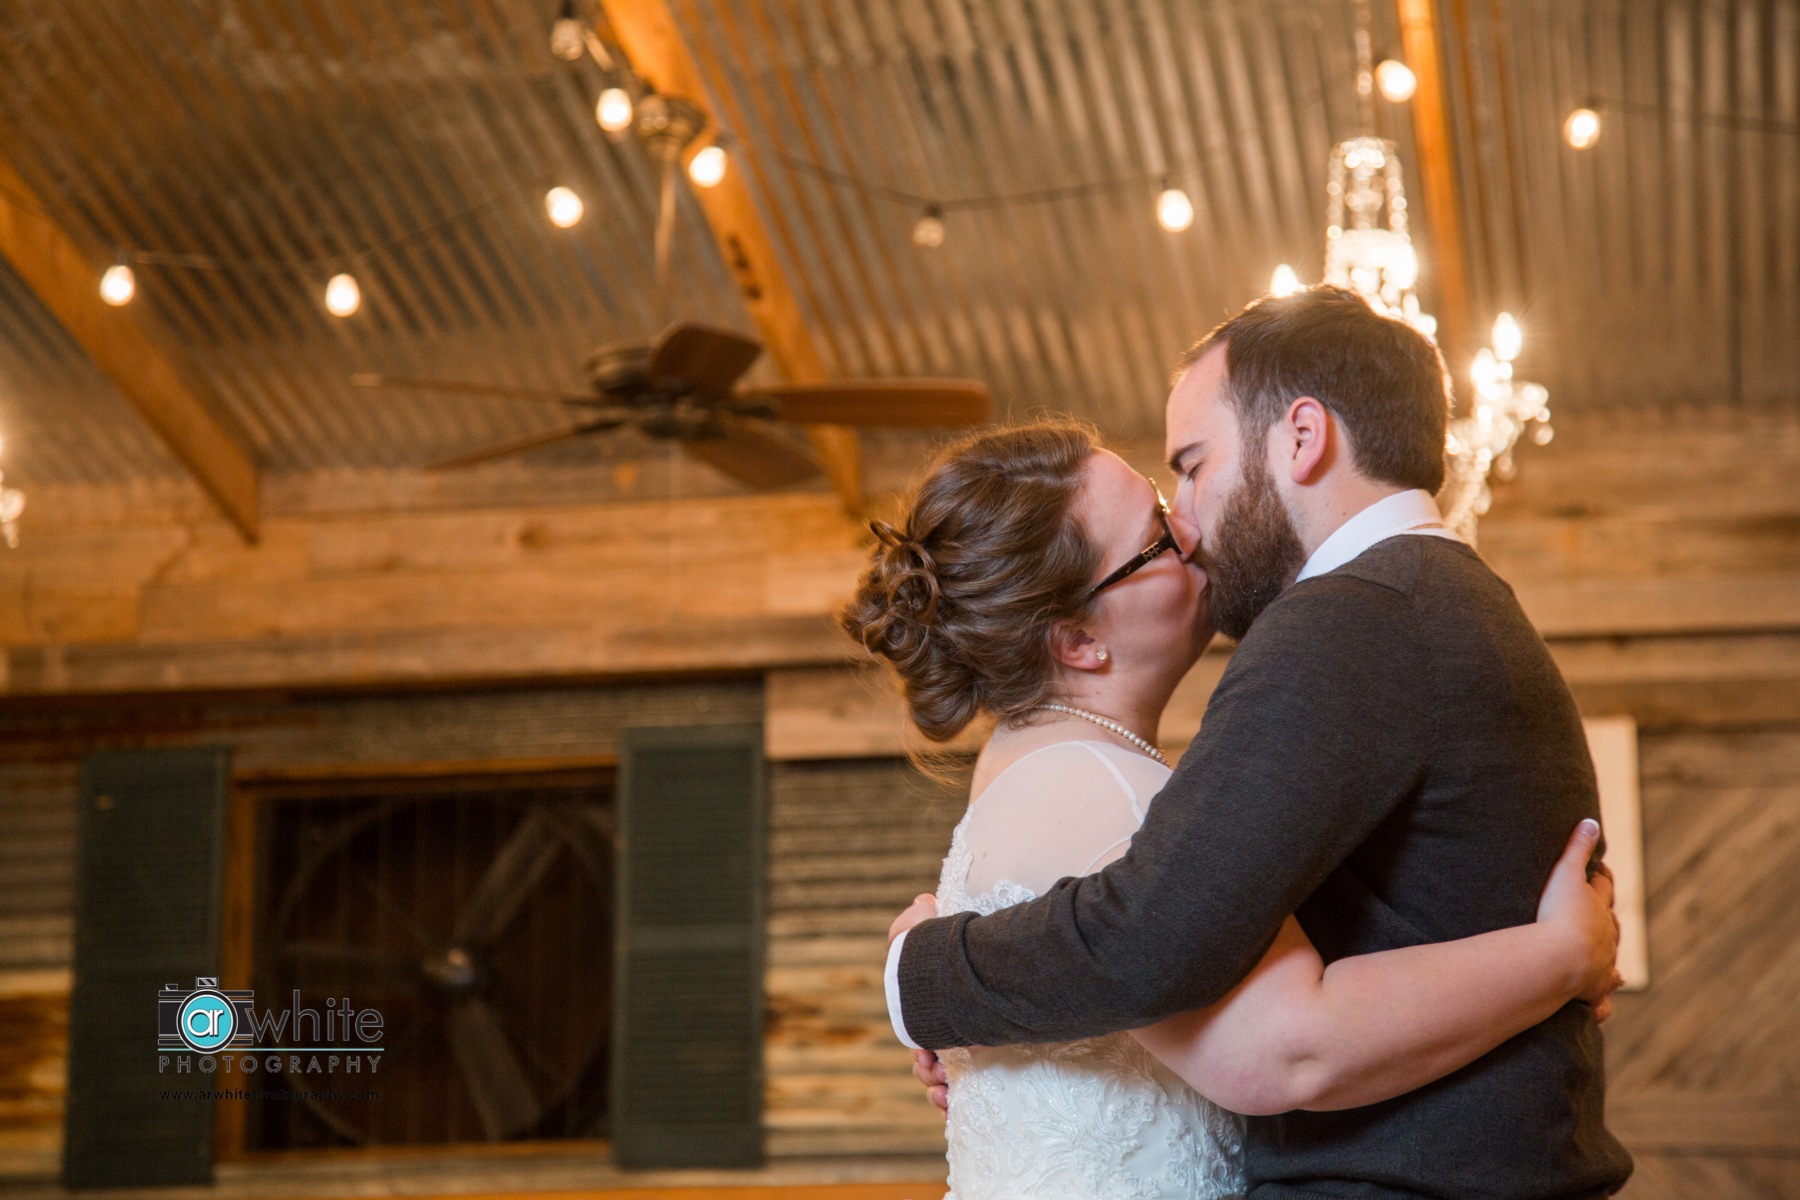 Husband and wife kiss after their first dance during the reception at a barn wedding.